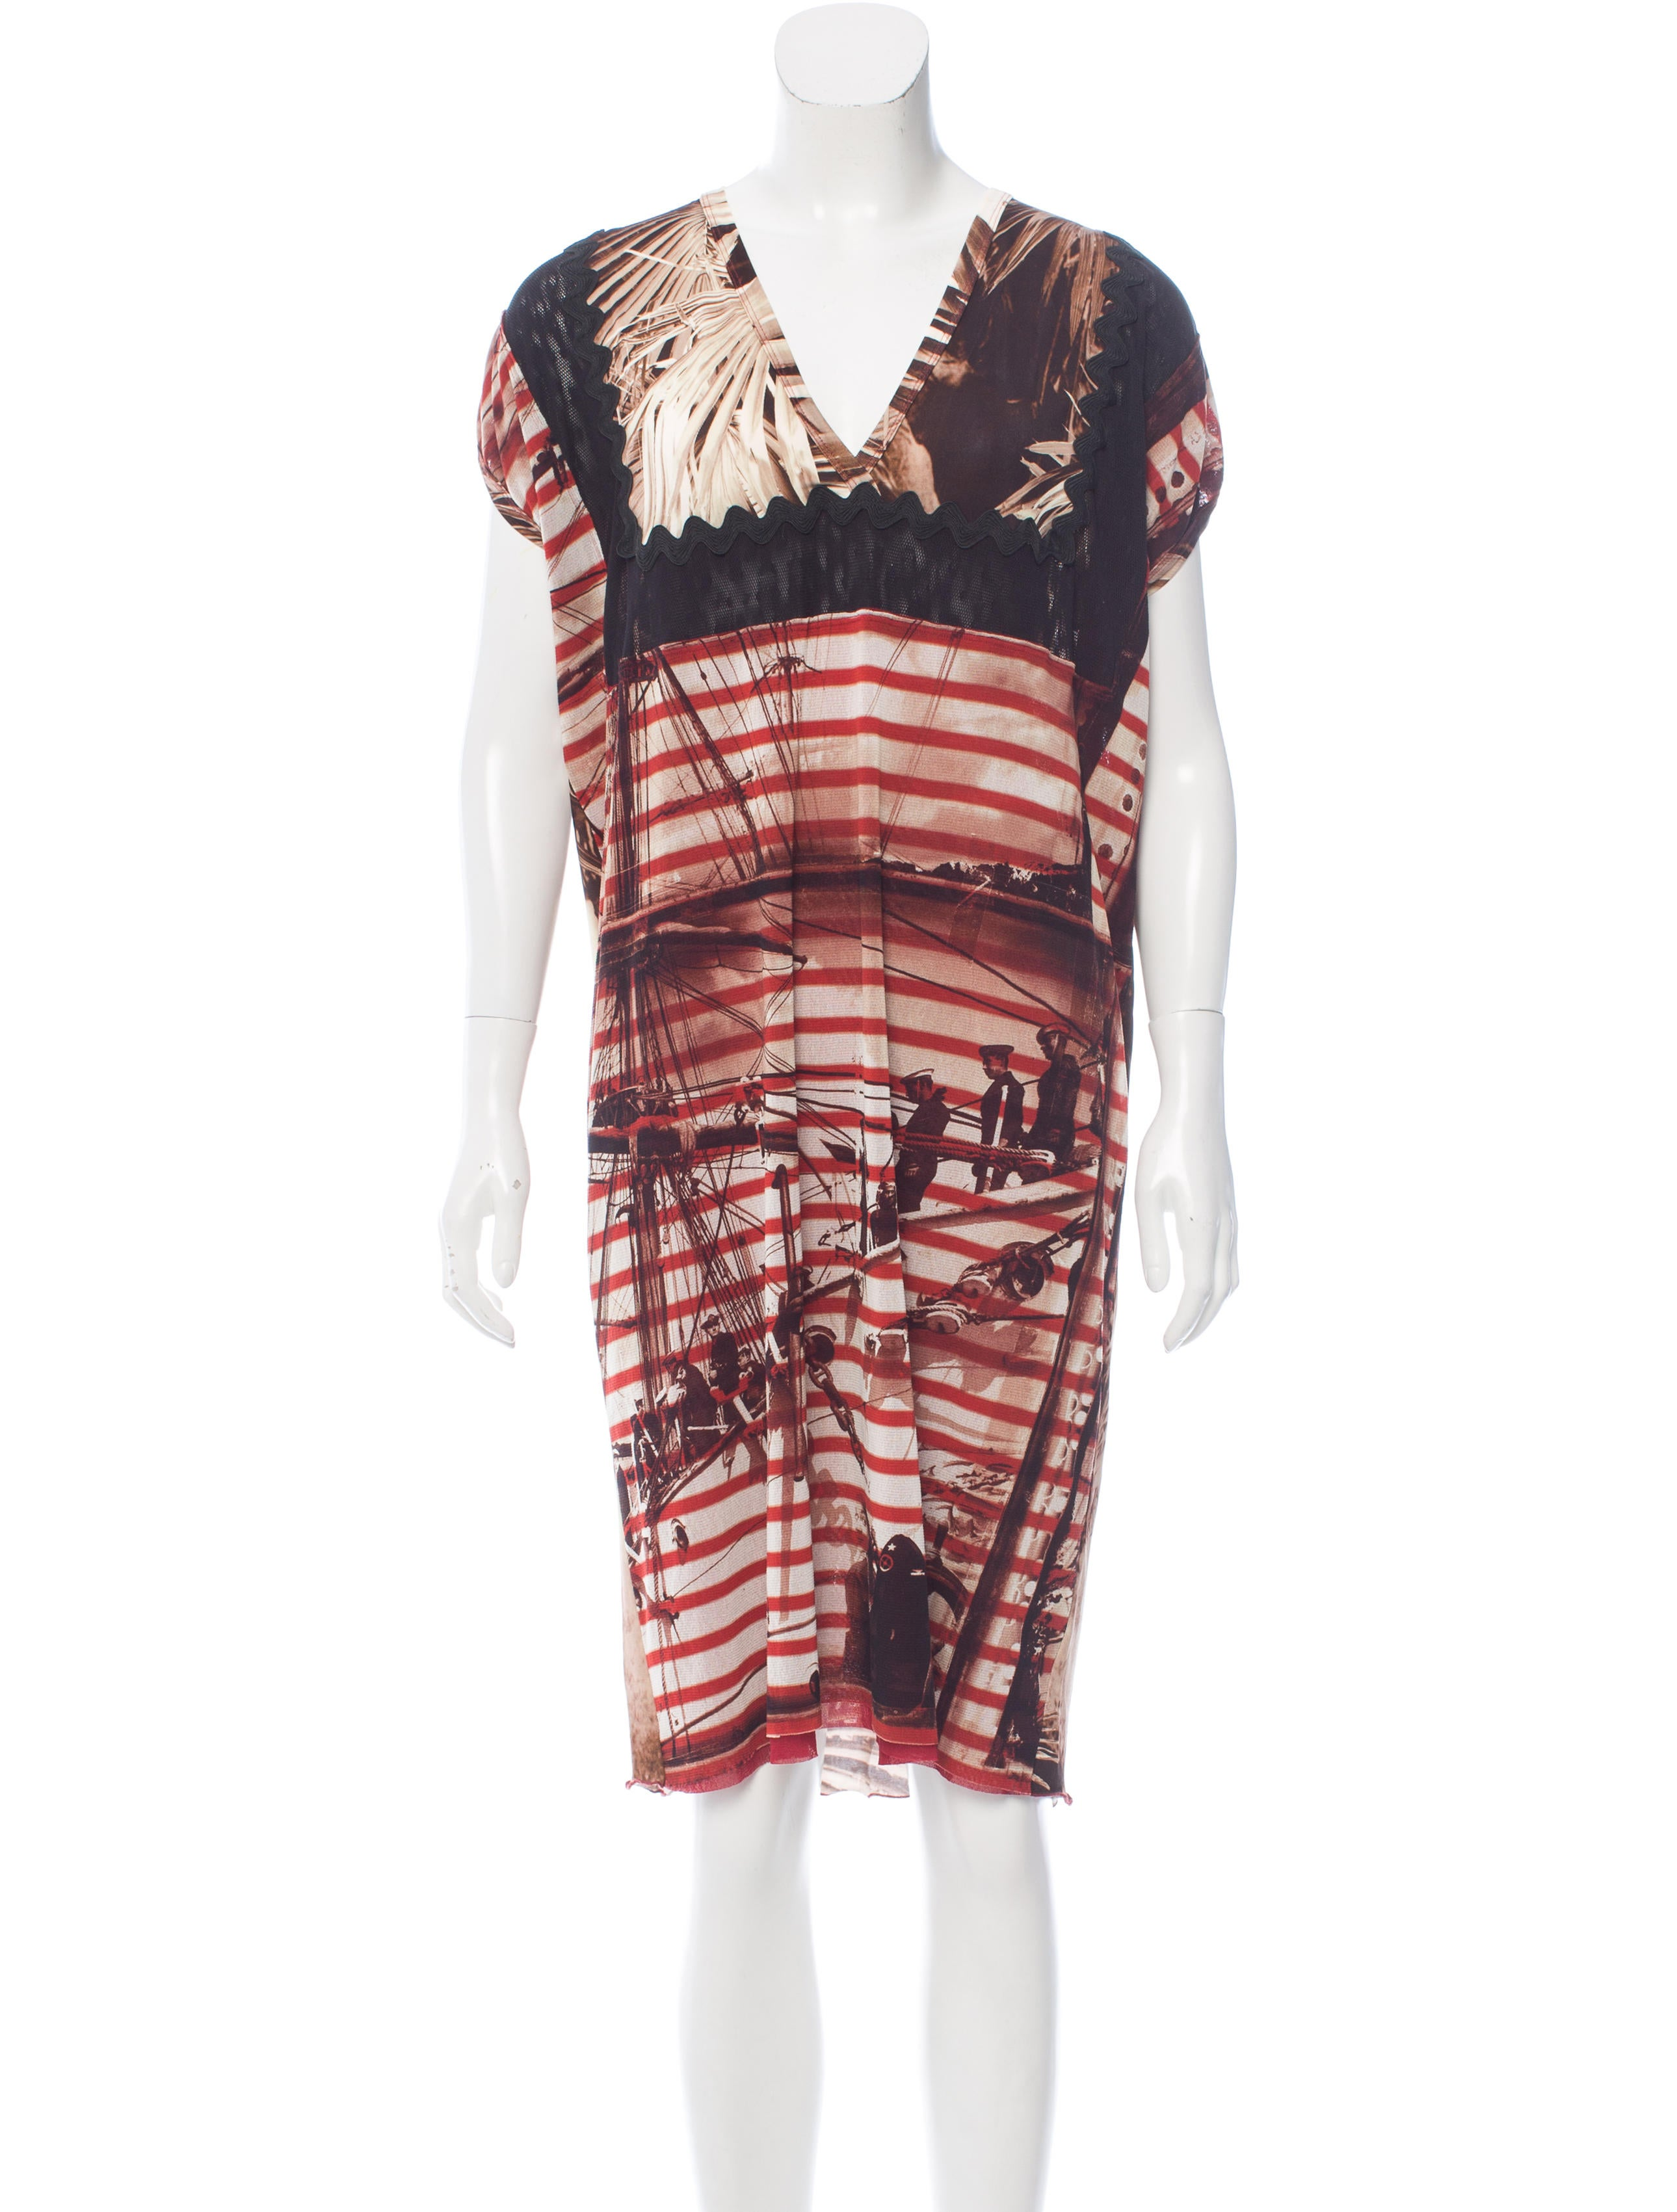 Jean paul gaultier soleil graphic shift dress w tags for Jean paul gaultier clothing